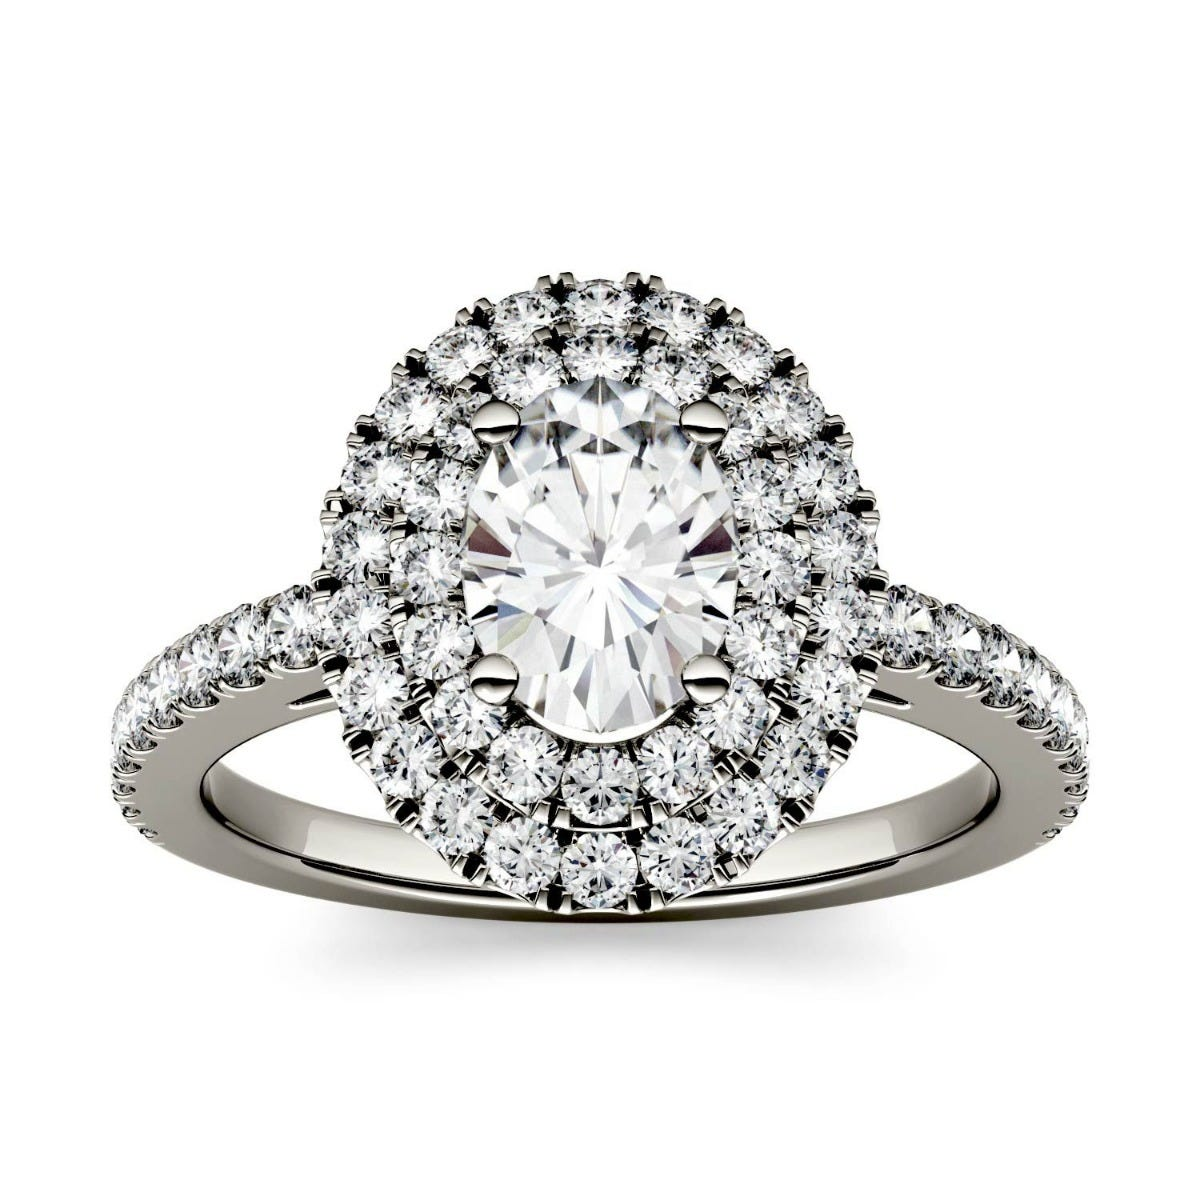 Forever One Oval Colorless Moissanite Double Halo with Side Accents Engagement Ring in 14K White Gold